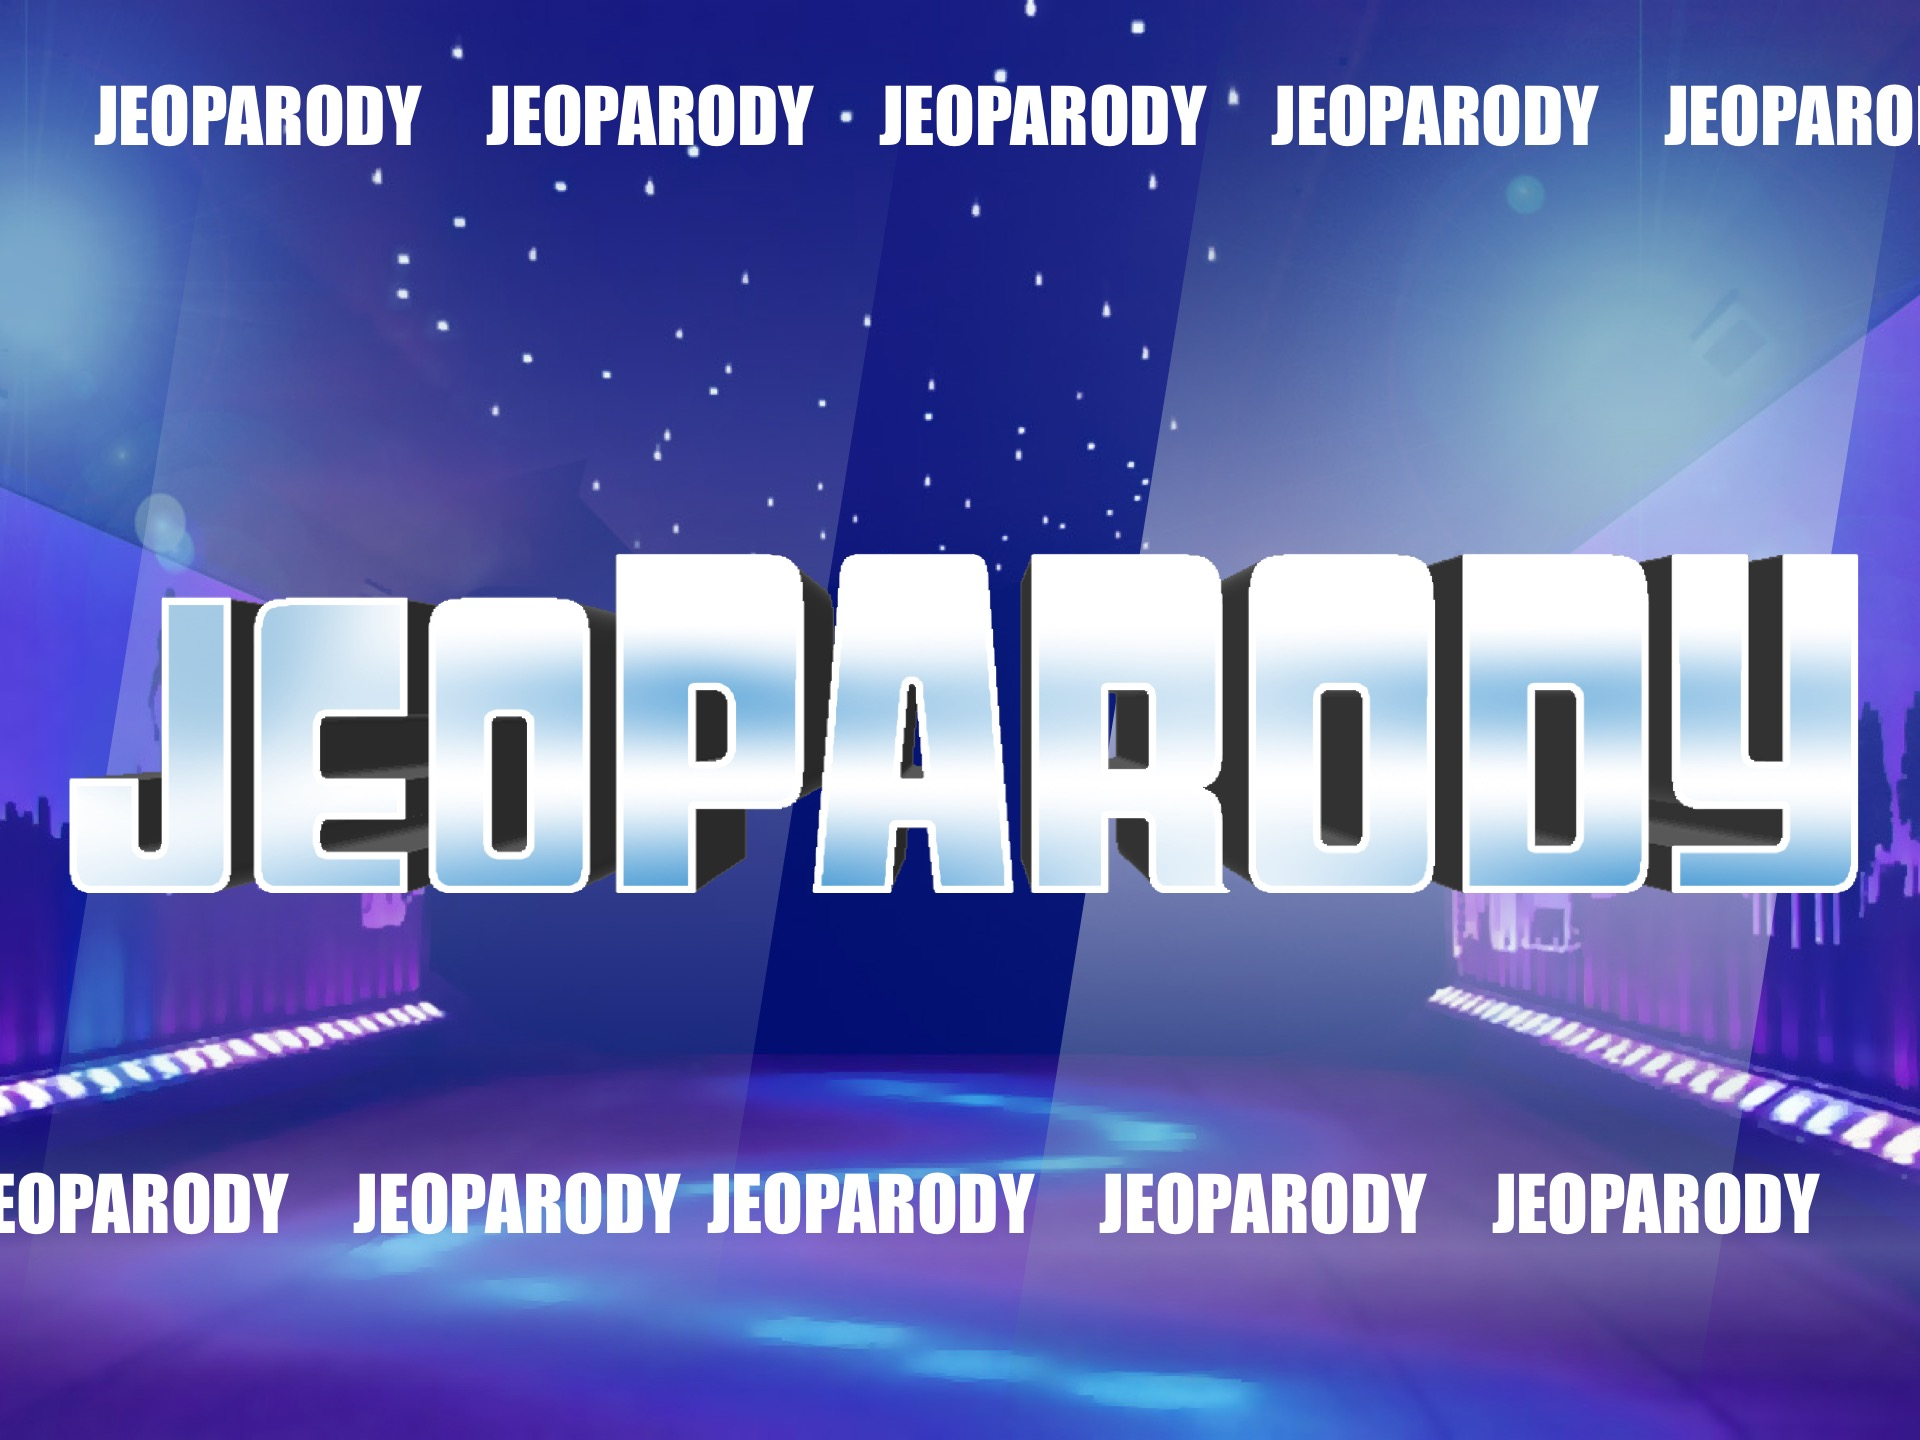 Jeopardy powerpoint game template youth downloadsyouth downloads description pronofoot35fo Image collections